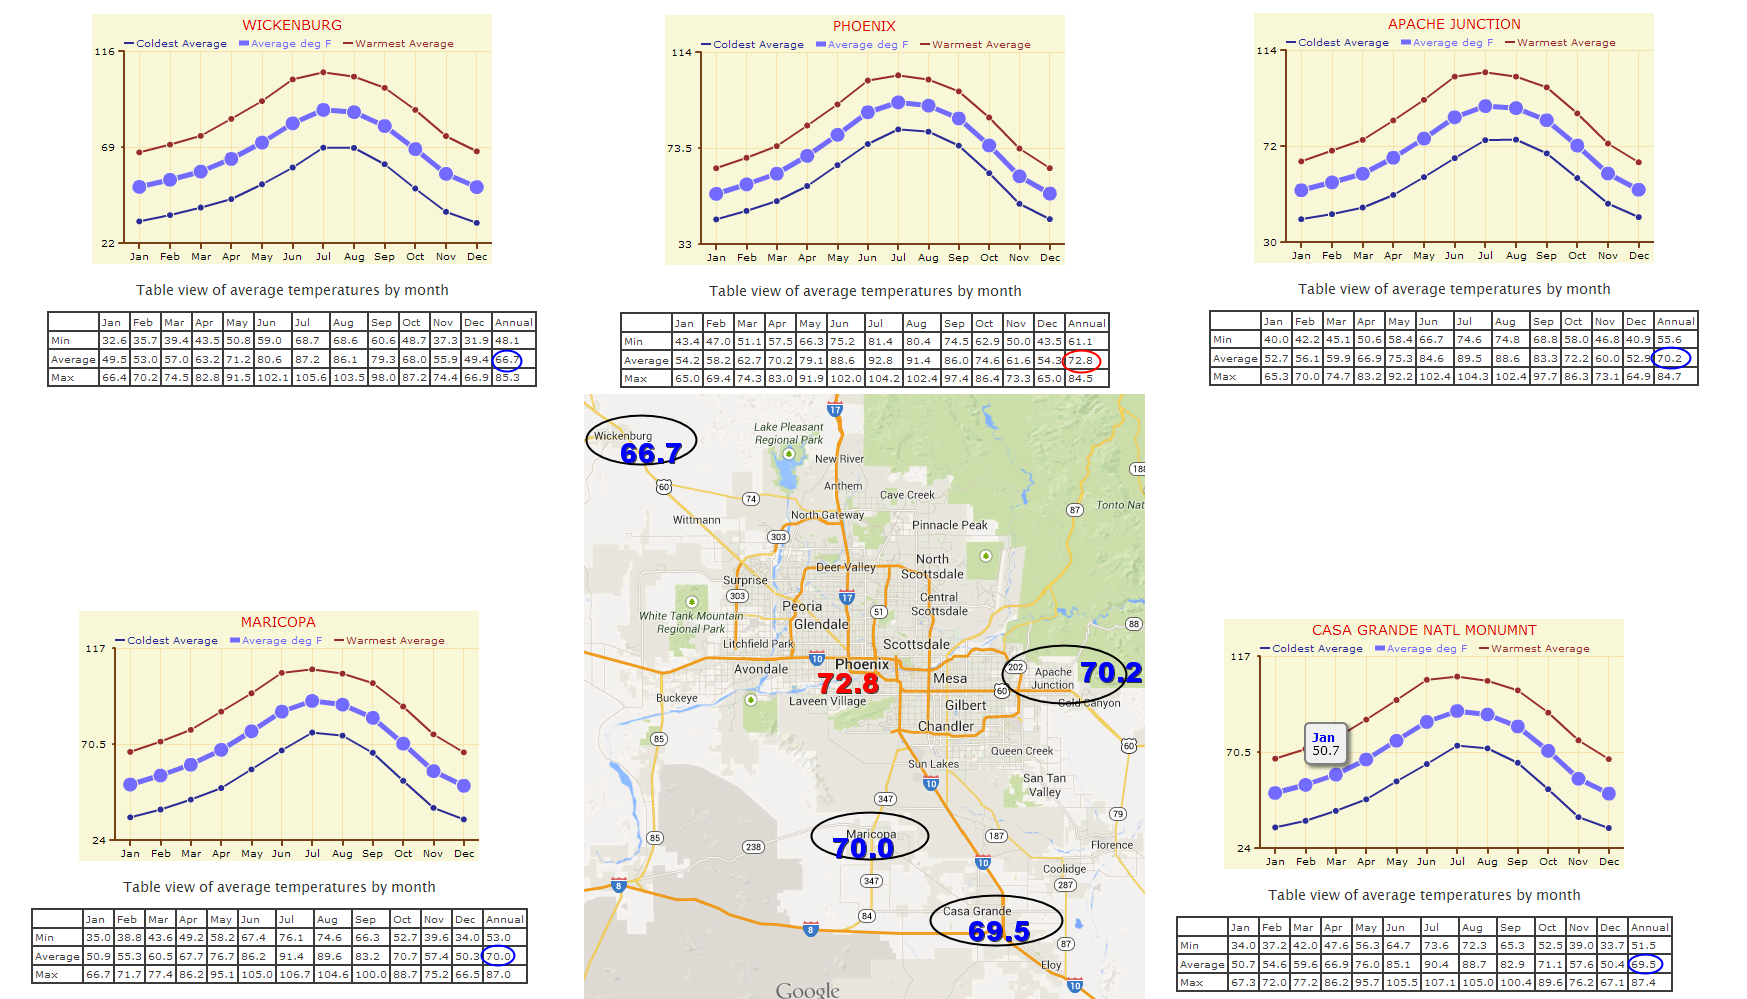 Annual Temperature Comparisons for Phoenix nearby cities